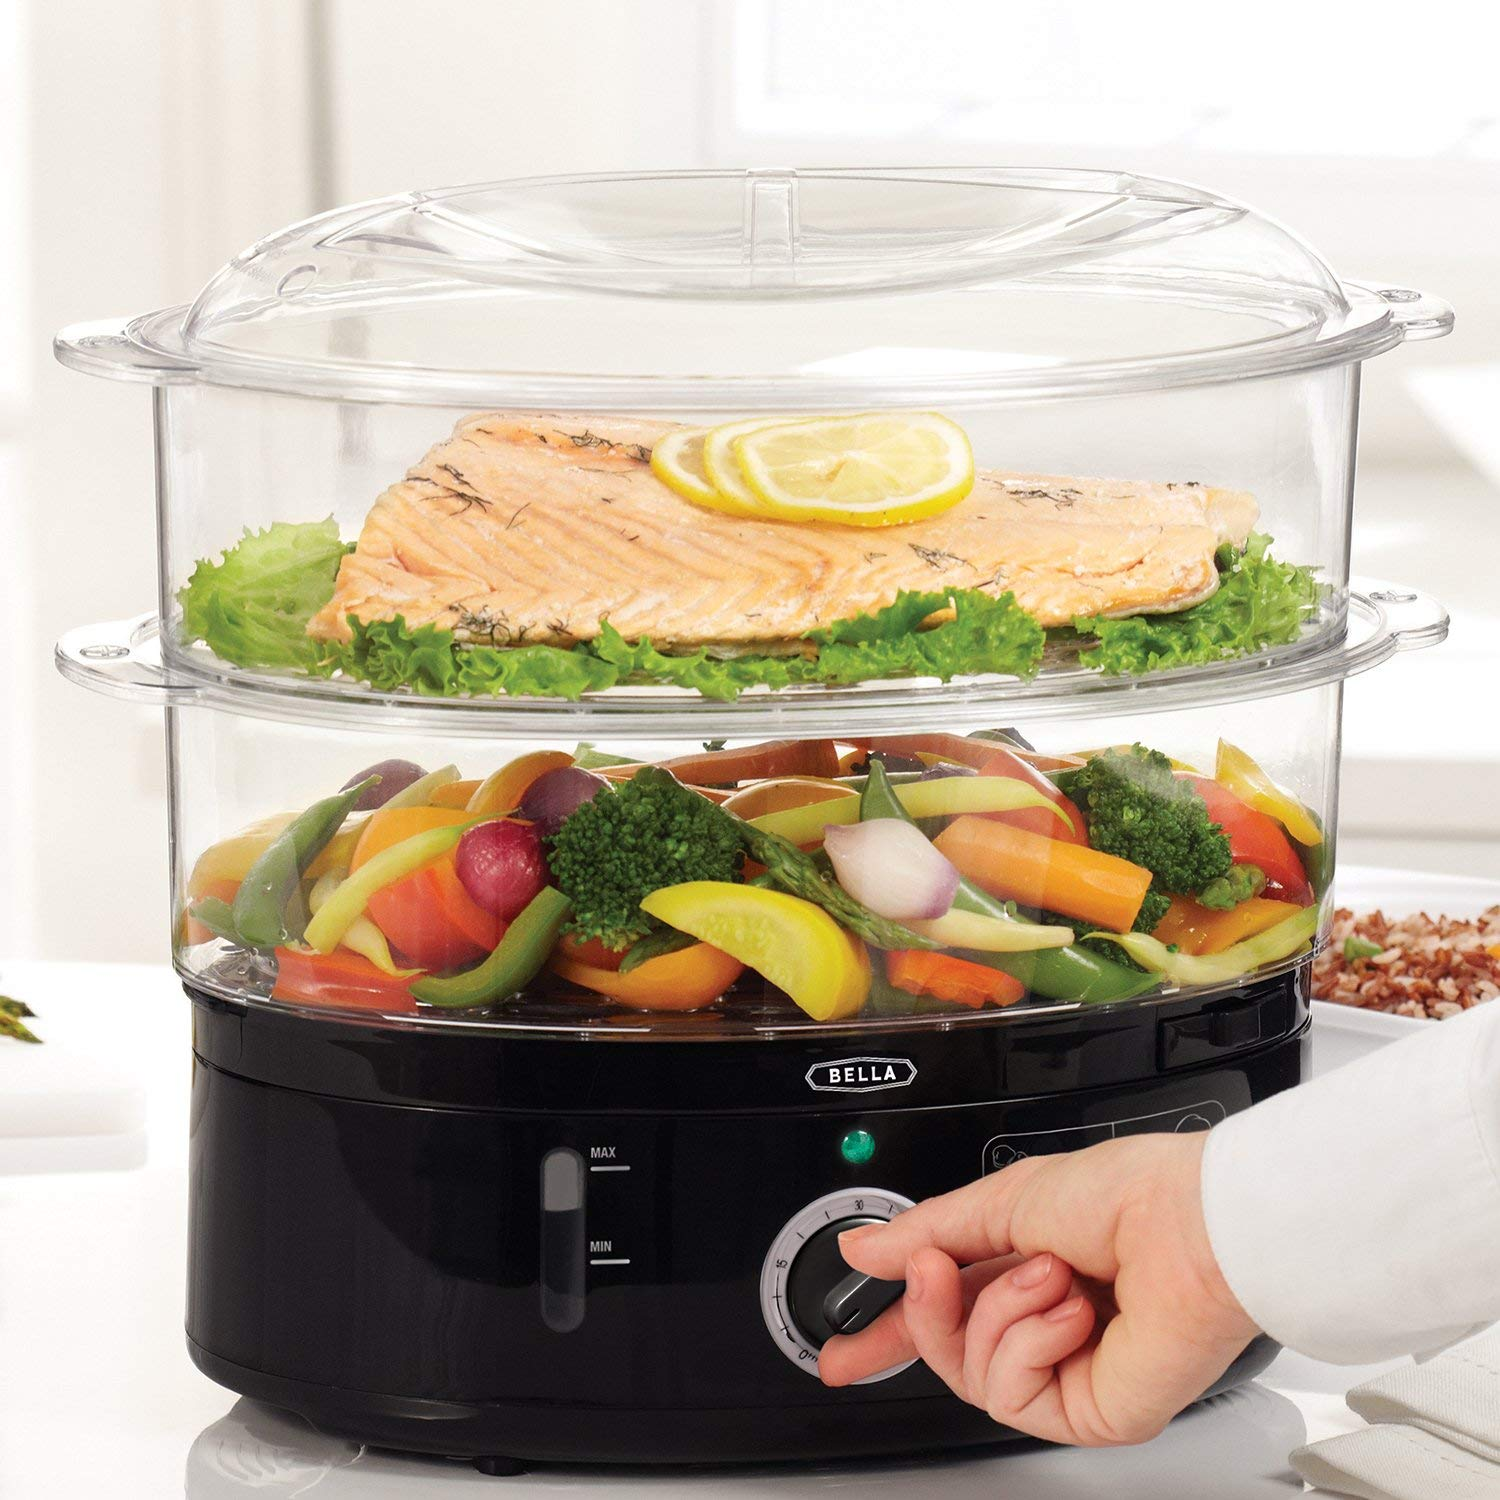 BELLA (13872) 7.4 Quart 2-Tier Stackable Baskets Healthy Food Steamer with Rice & Grains Tray, Auto Shutoff & Boil Dry Protection for Cooking Vegetables, Grains, Meats by BELLA